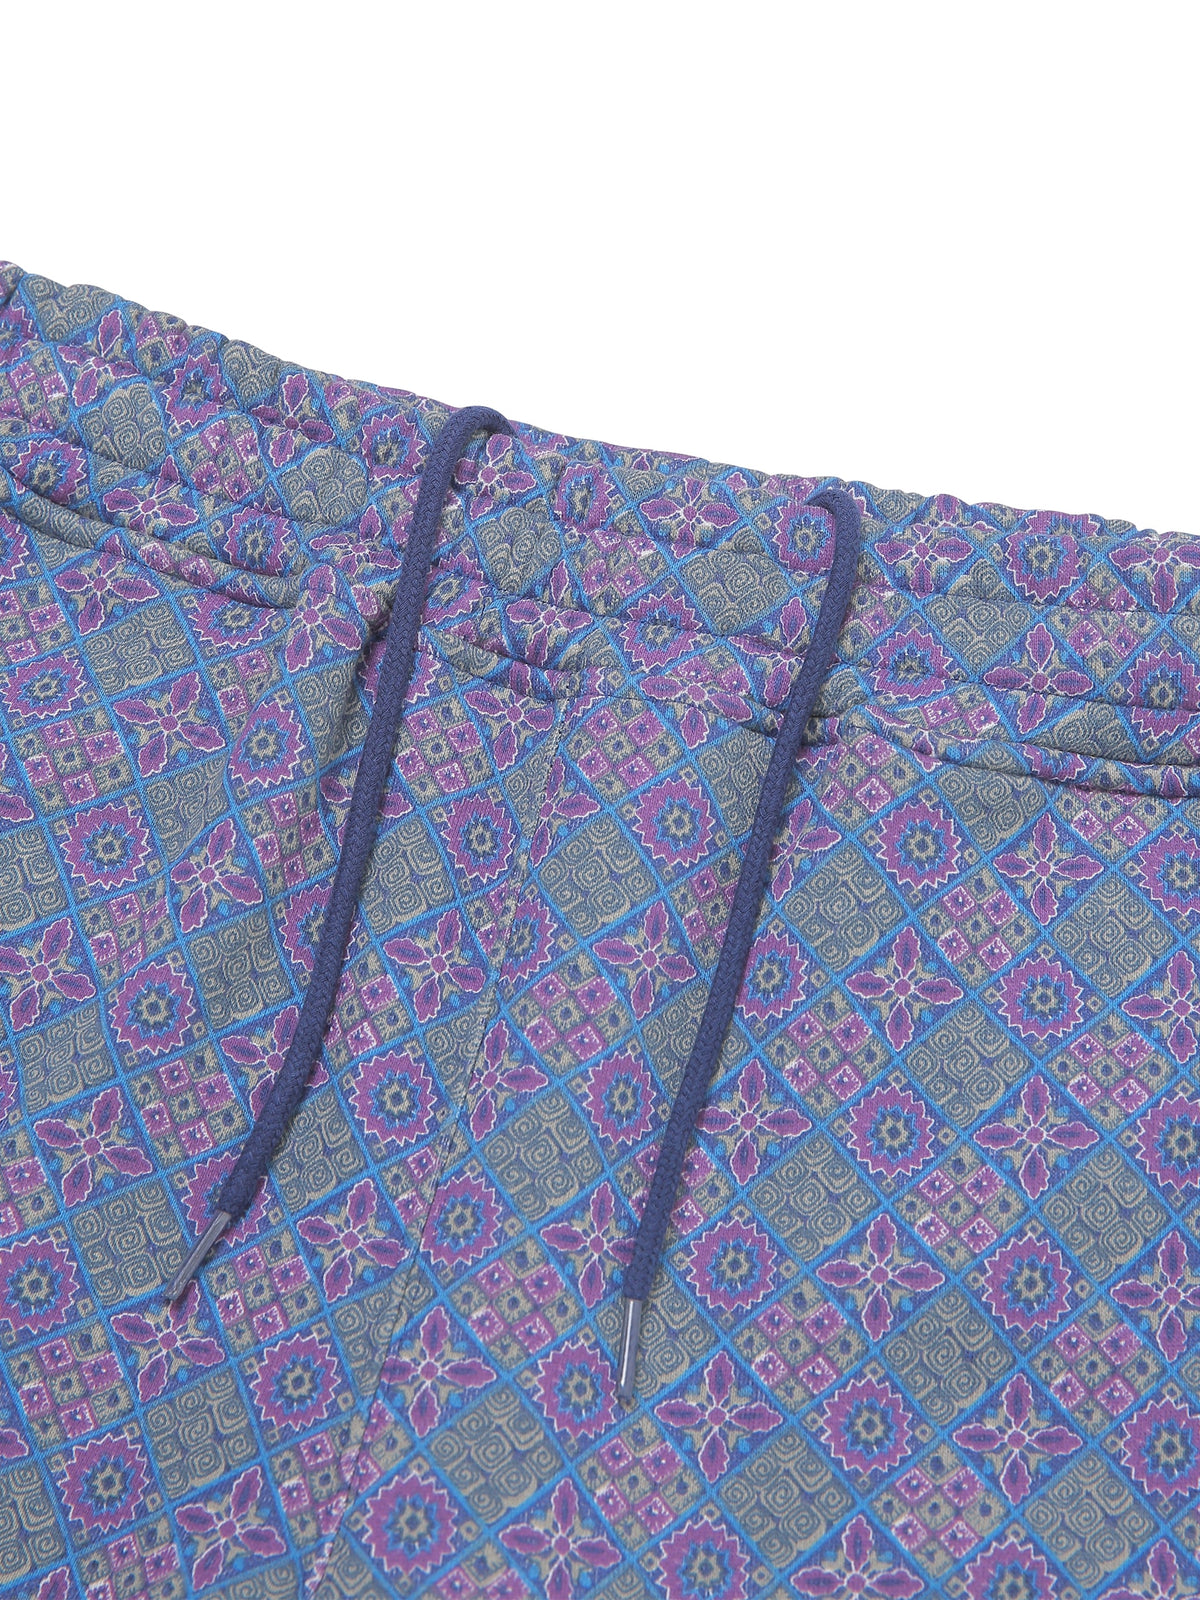 Tile Sweatpant Pants